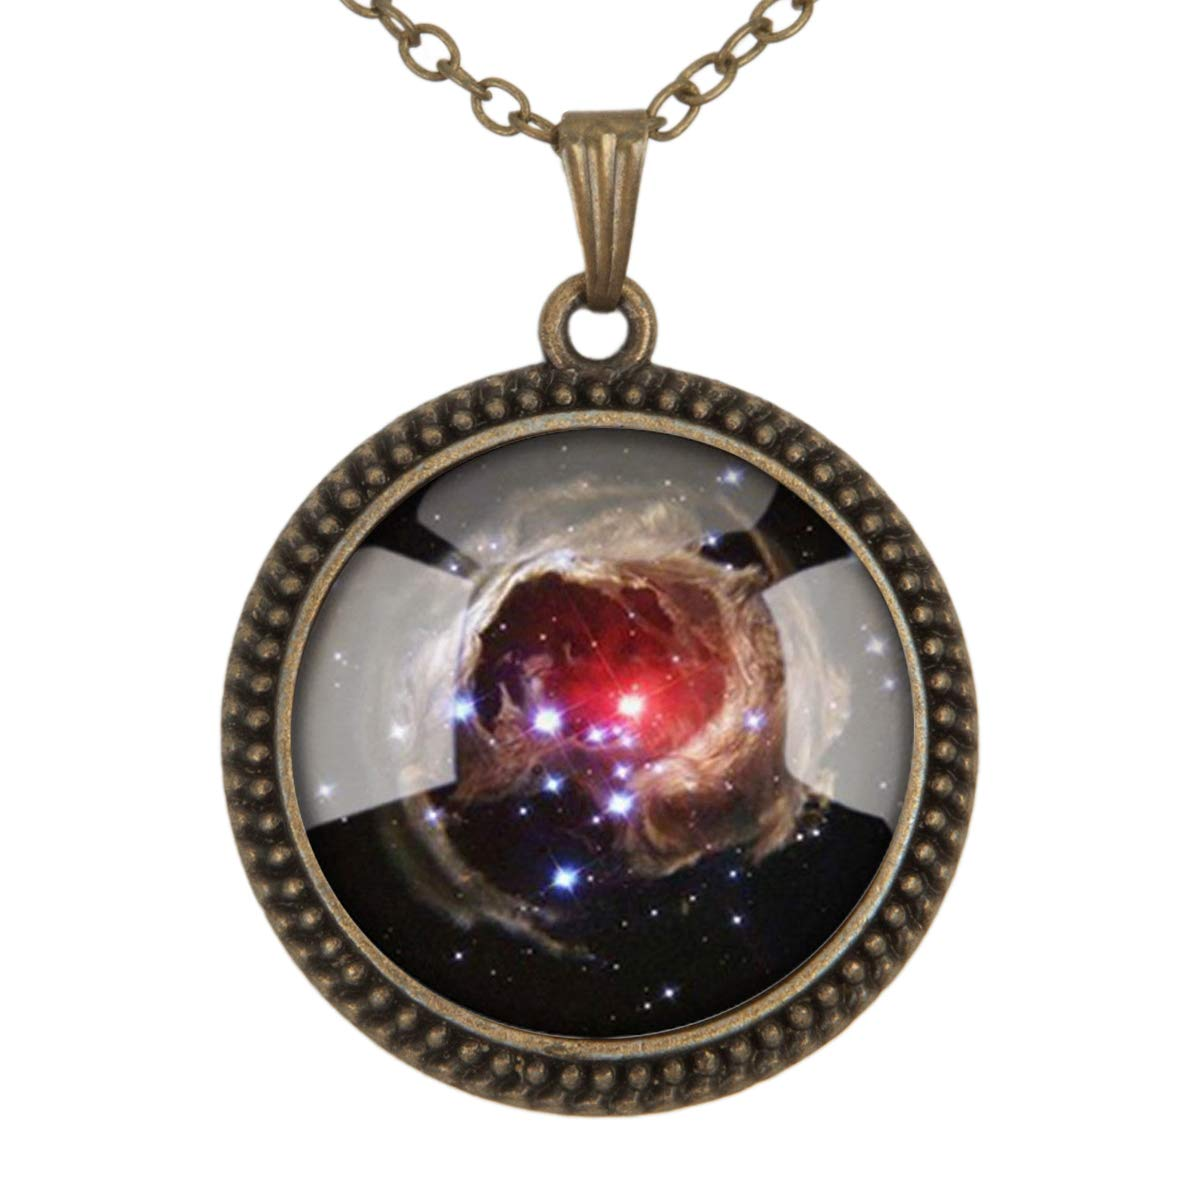 Family Decor Universe Galaxy Space Starry Night Sky Pendant Necklace Cabochon Glass Vintage Bronze Chain Necklace Jewelry Handmade